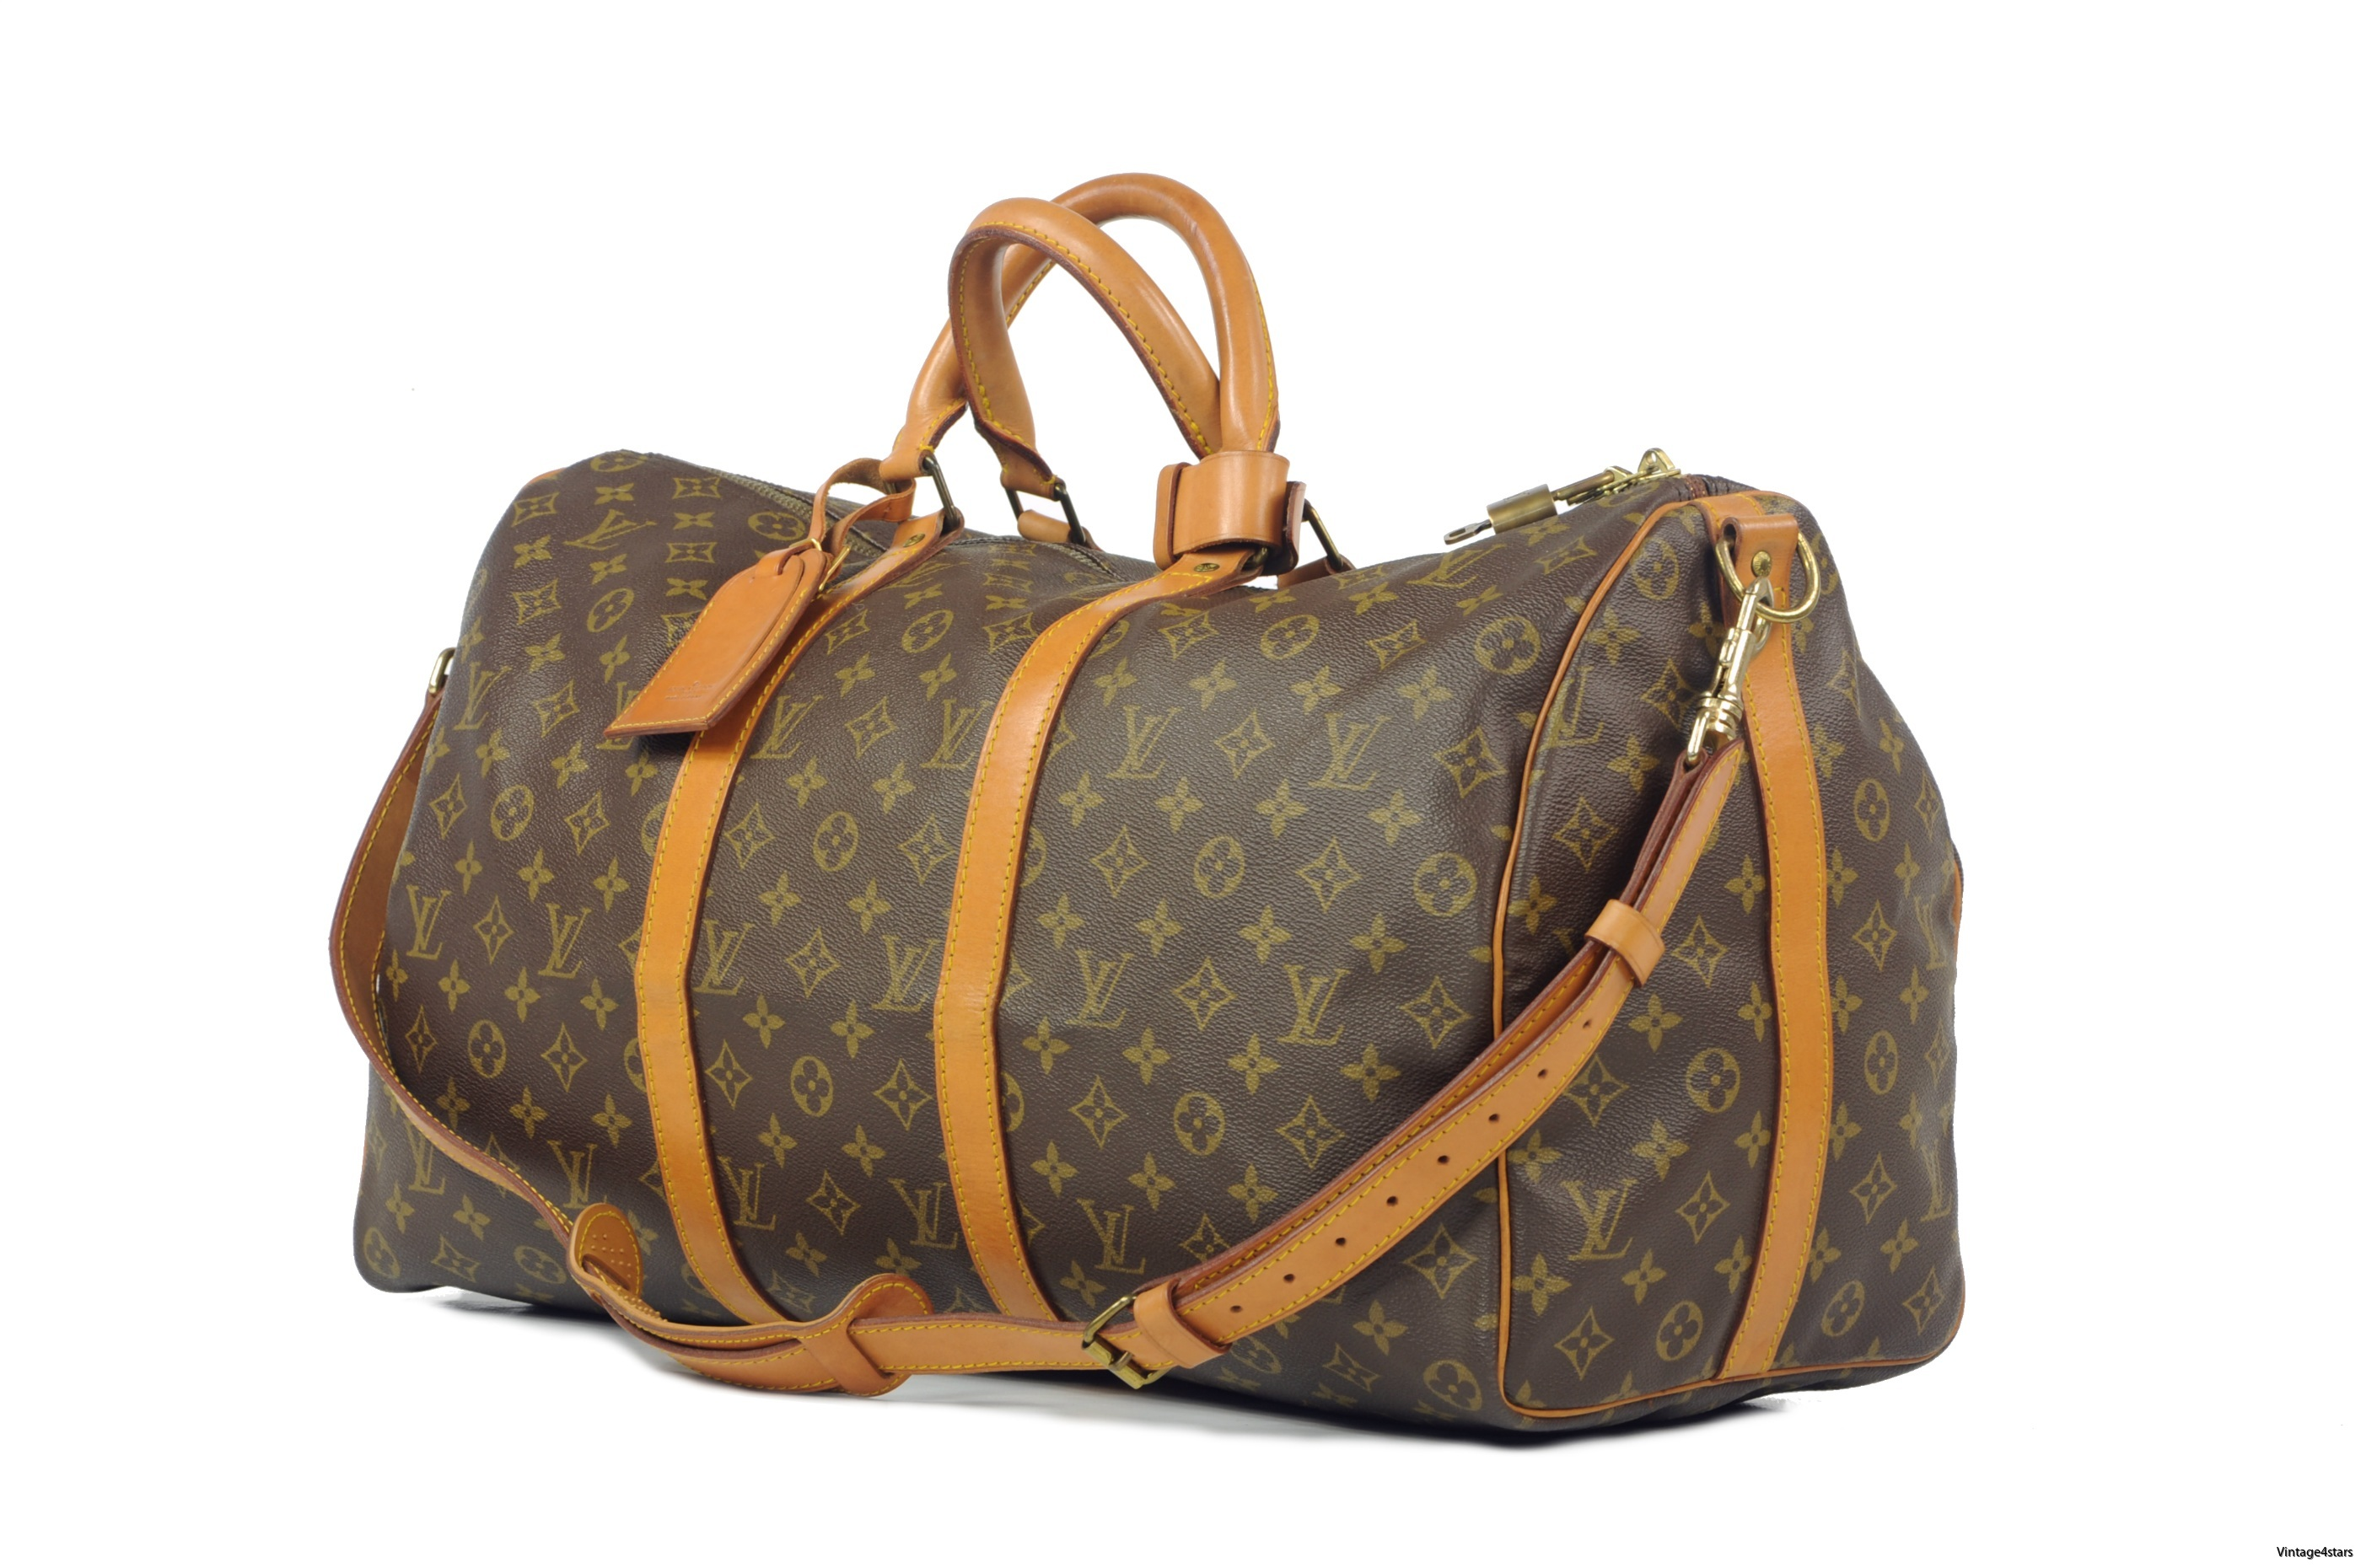 Louis Vuitton Keepall 50 Bandouliere 3